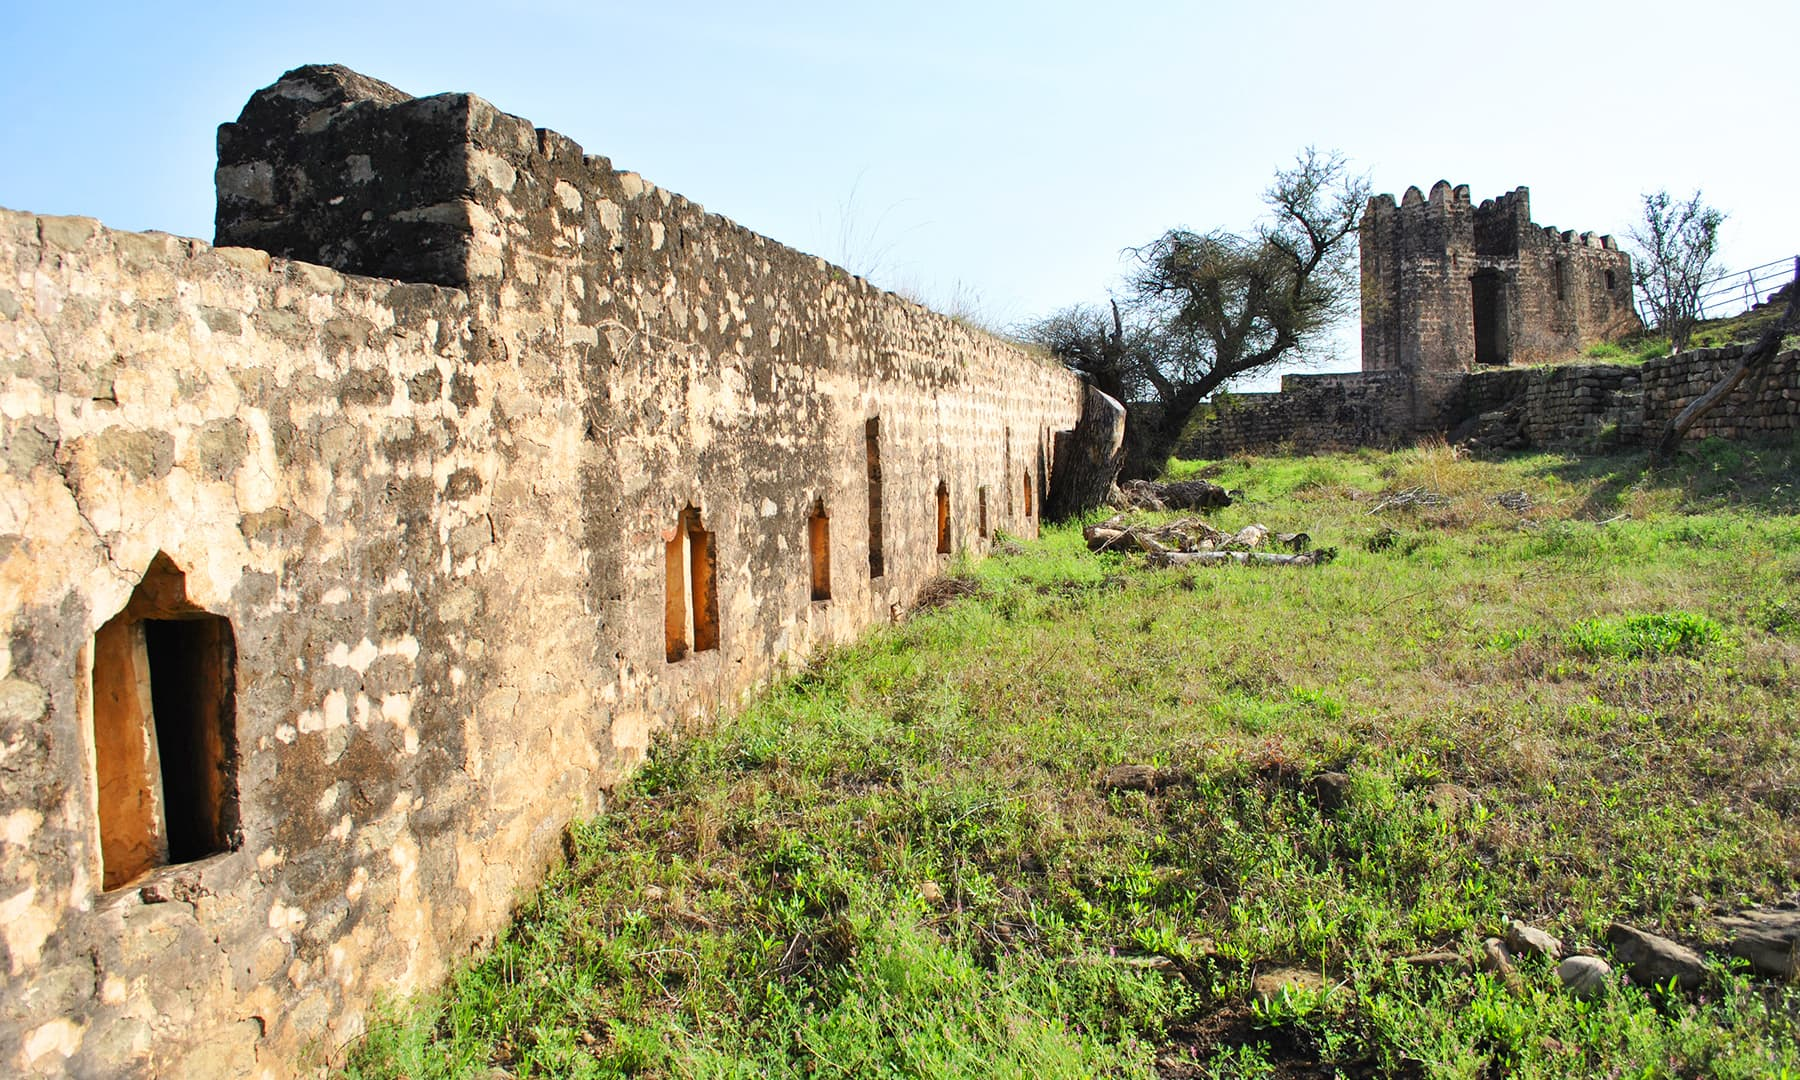 It is said that the fort was built over the site of an old Hindu Shiva temple, but present structure is construction of no later than 16th century.